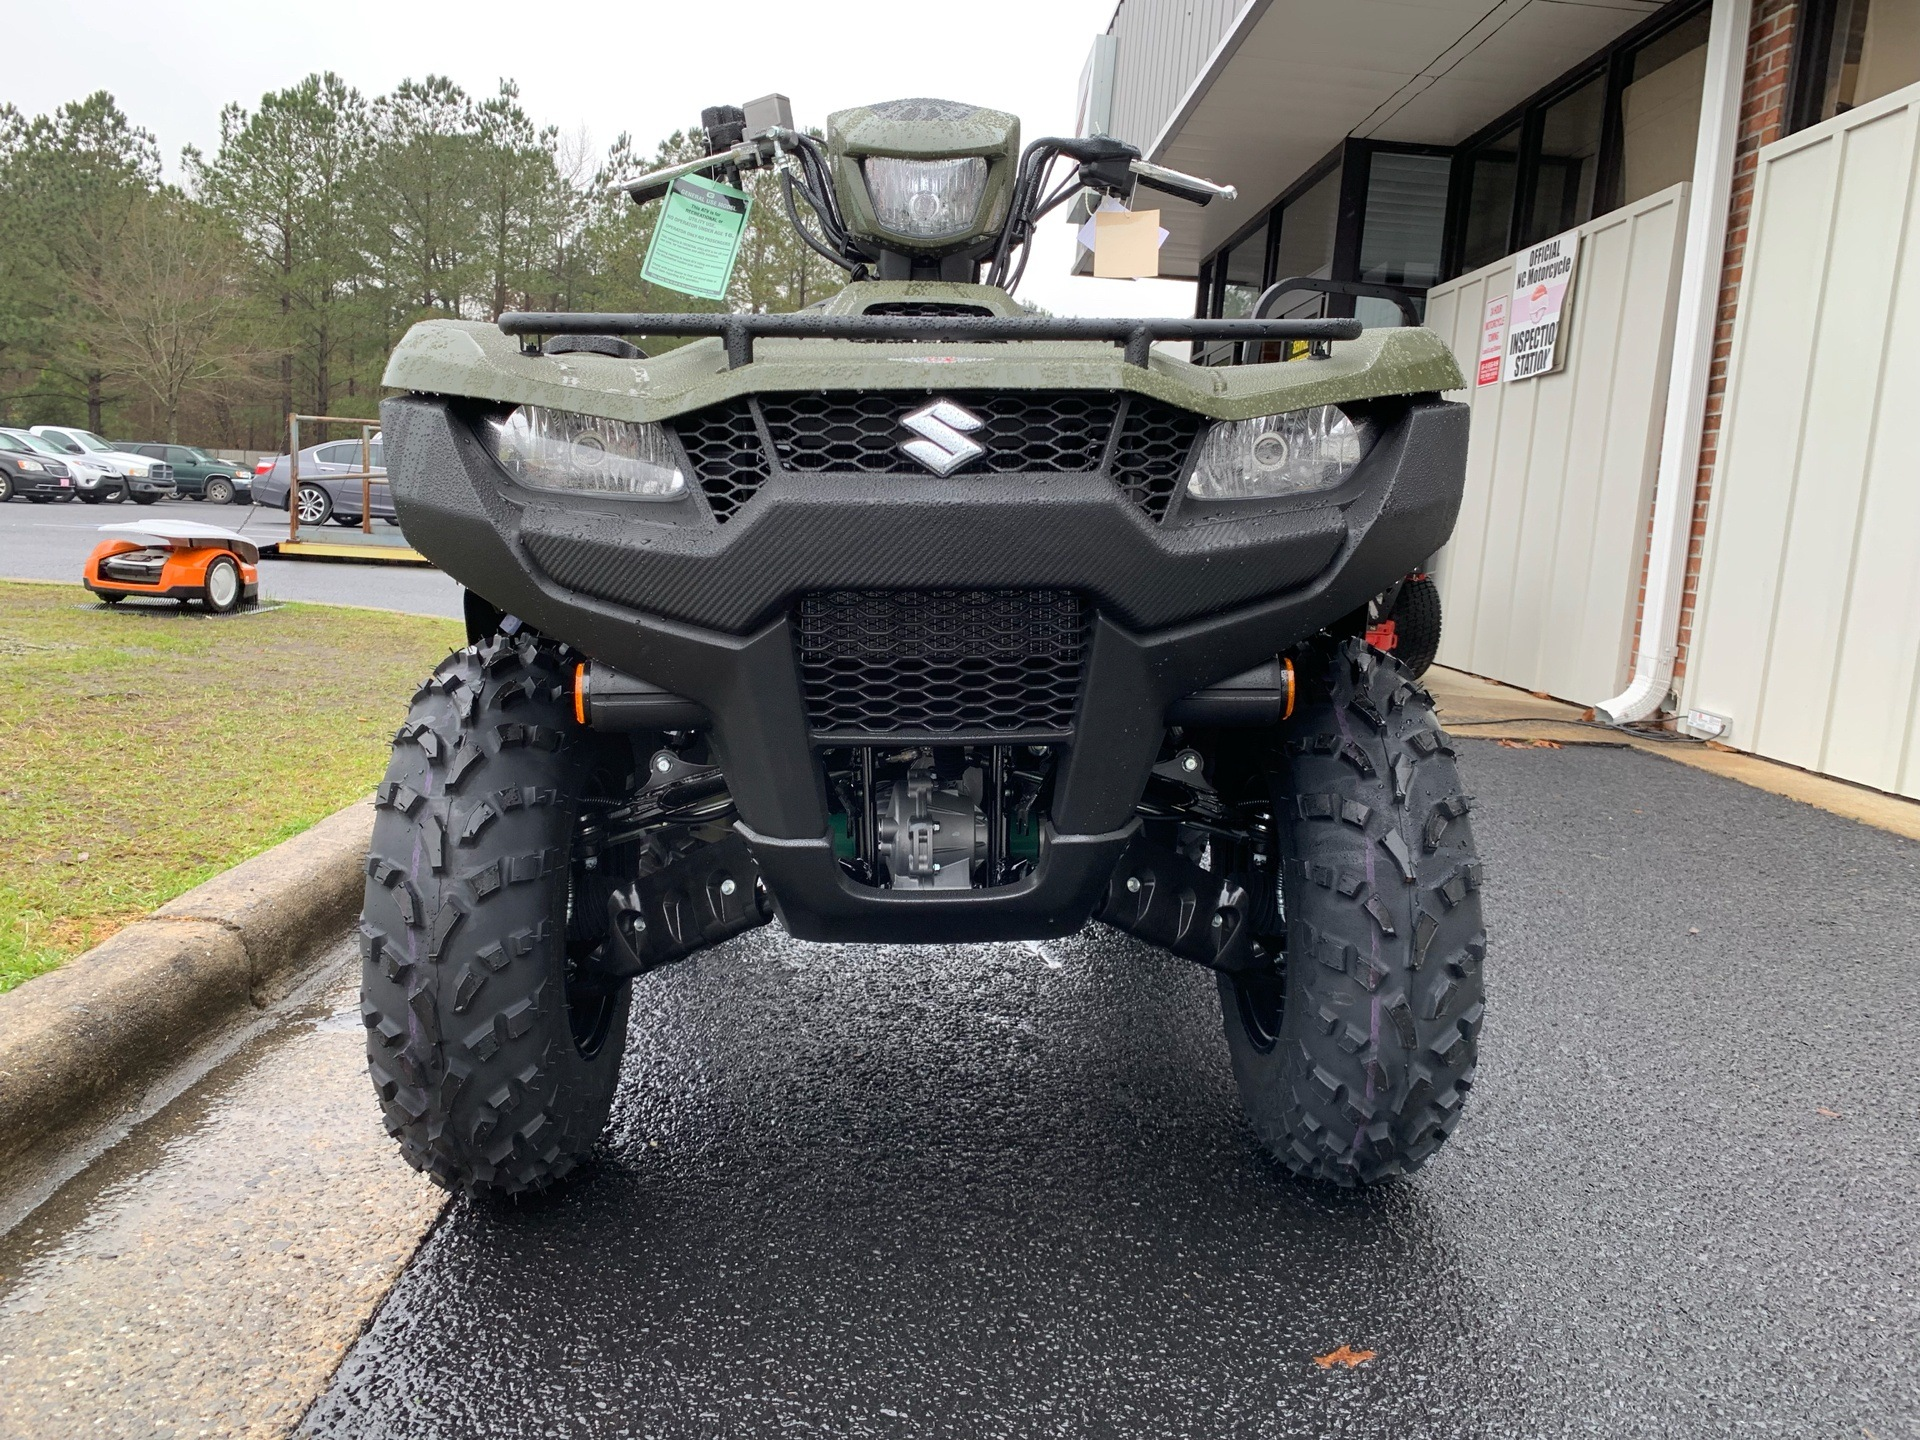 2019 Suzuki KingQuad 500AXi in Greenville, North Carolina - Photo 4